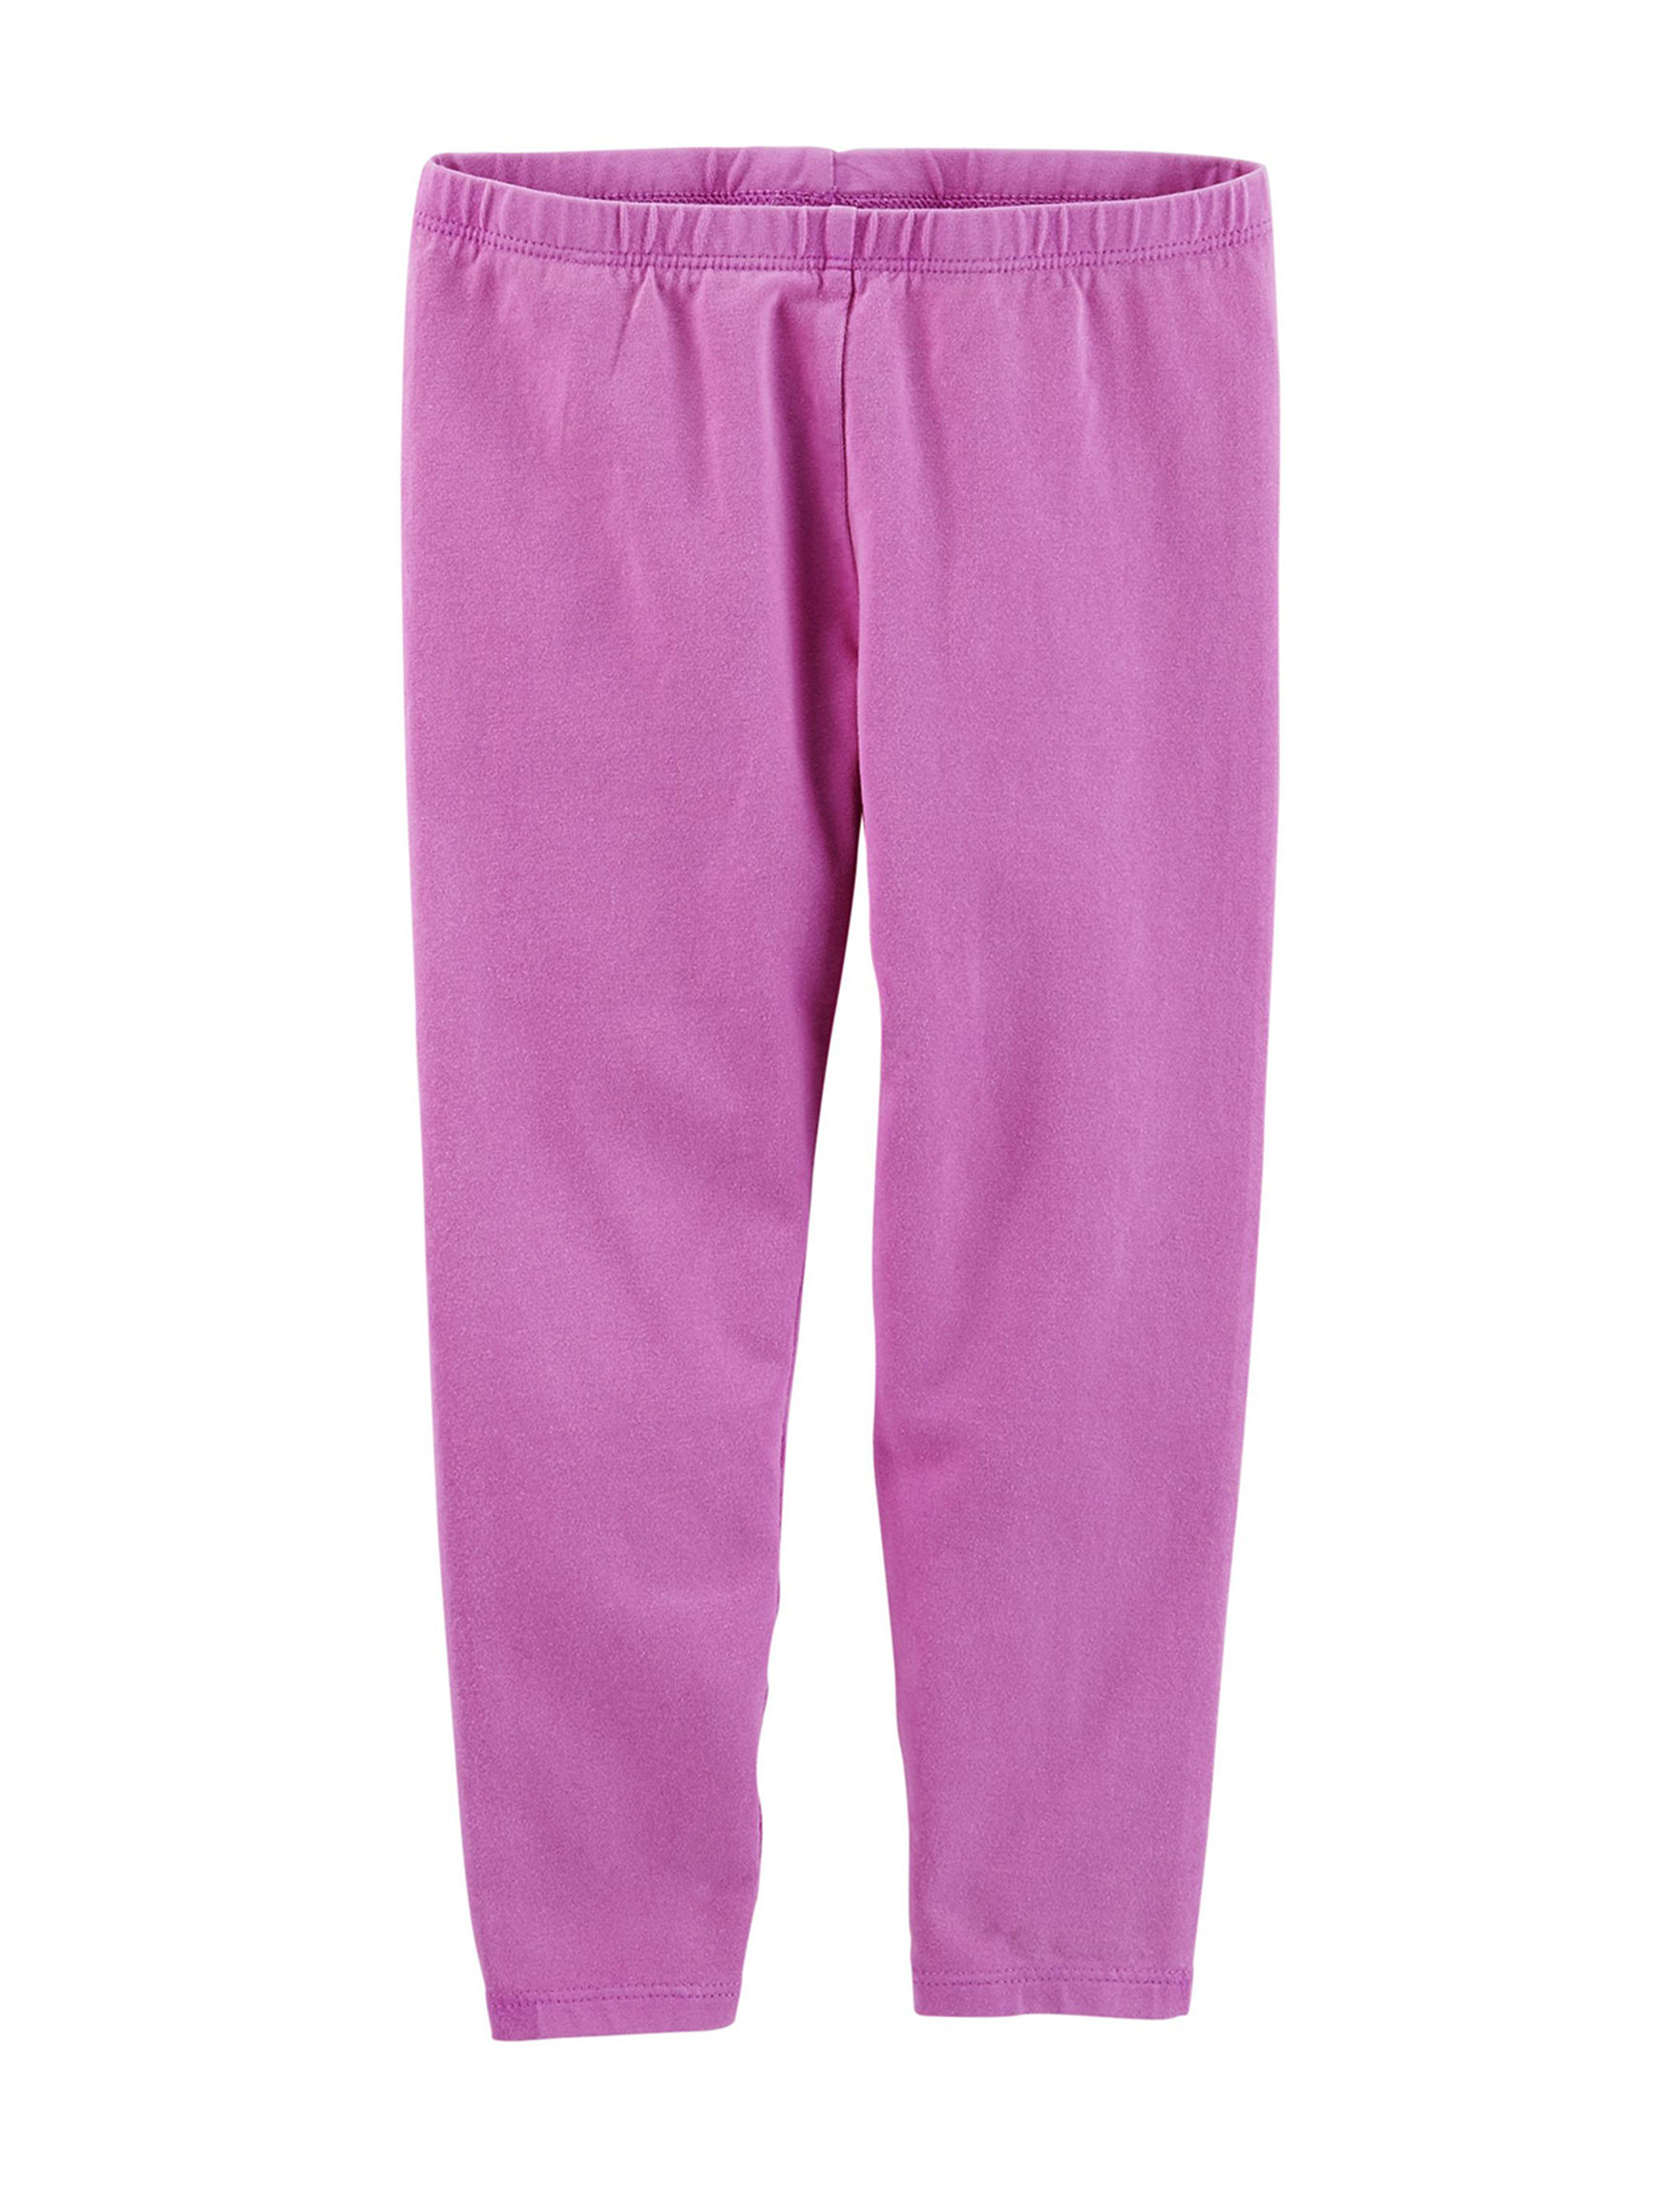 Oshkosh B'Gosh Purple Stretch